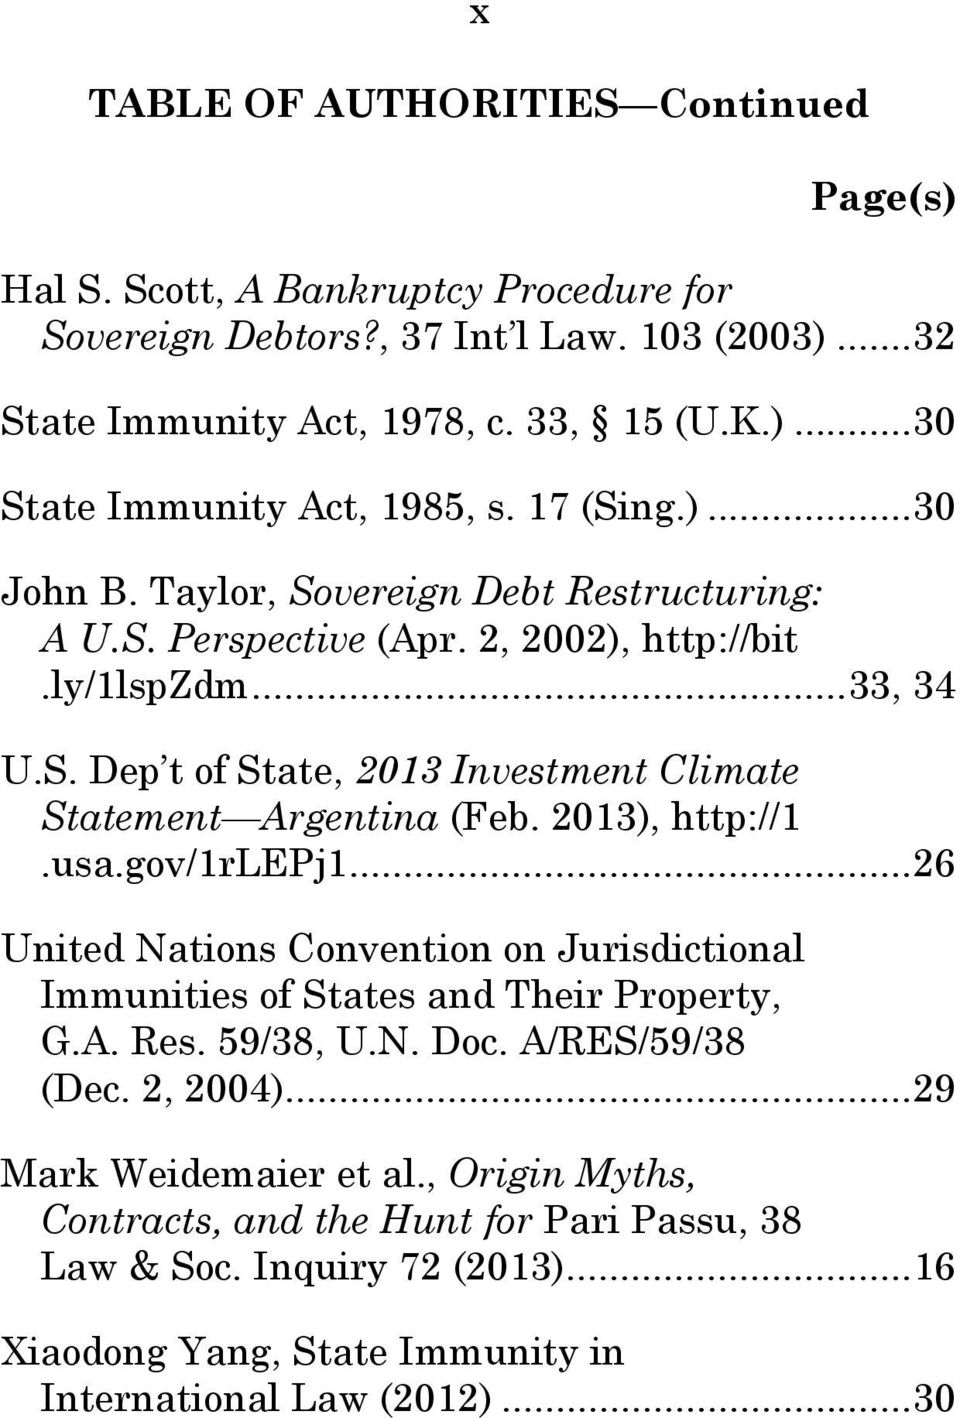 2013), http://1.usa.gov/1rlepj1... 26 United Nations Convention on Jurisdictional Immunities of States and Their Property, G.A. Res. 59/38, U.N. Doc. A/RES/59/38 (Dec. 2, 2004).